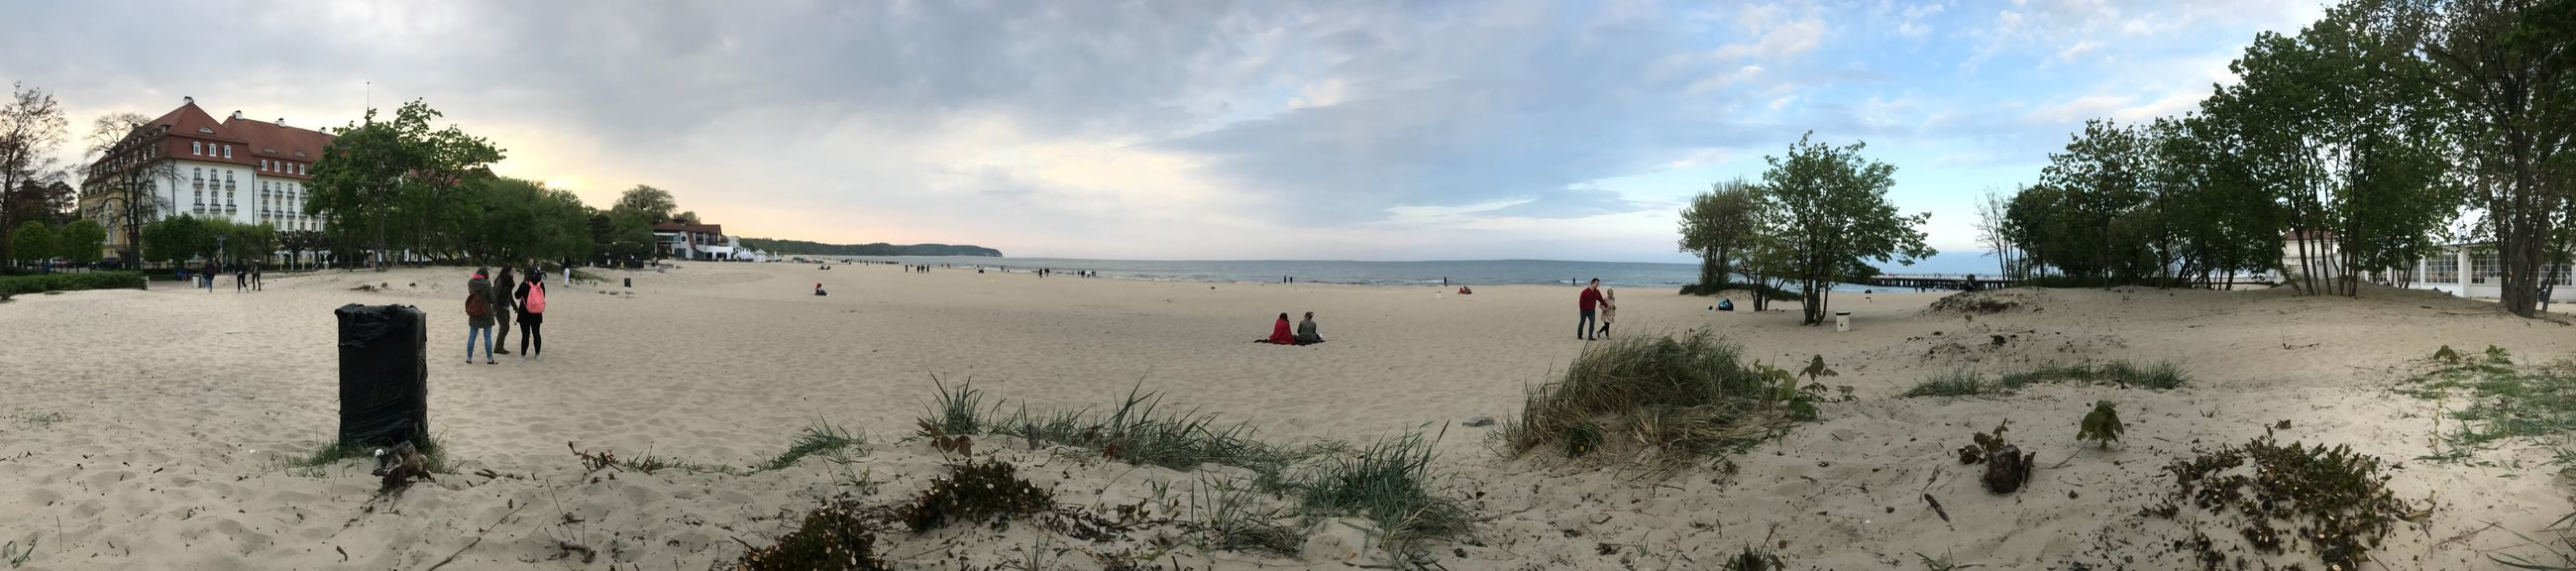 Sky Beach Land Cloud - Sky Sea Panoramic Sand Water Nature Plant Beauty In Nature Tree Crowd Group Of People Scenics - Nature Horizon Over Water Outdoors Day Large Group Of People Horizon